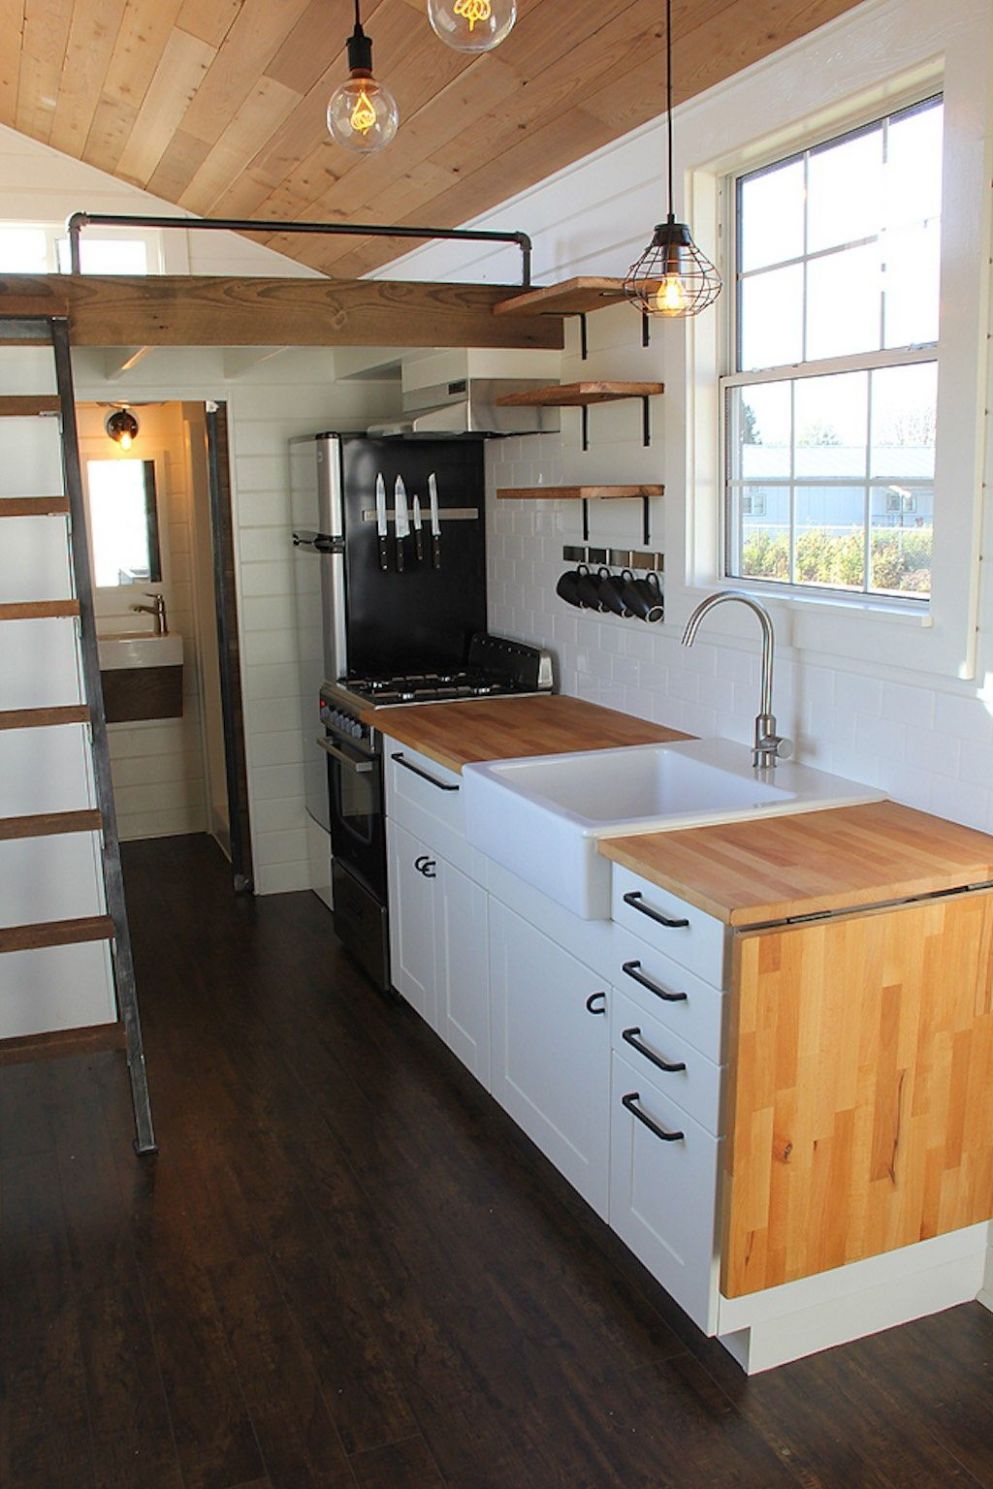 Rustic Industrial (With images) | Tiny house kitchen, Small house ..